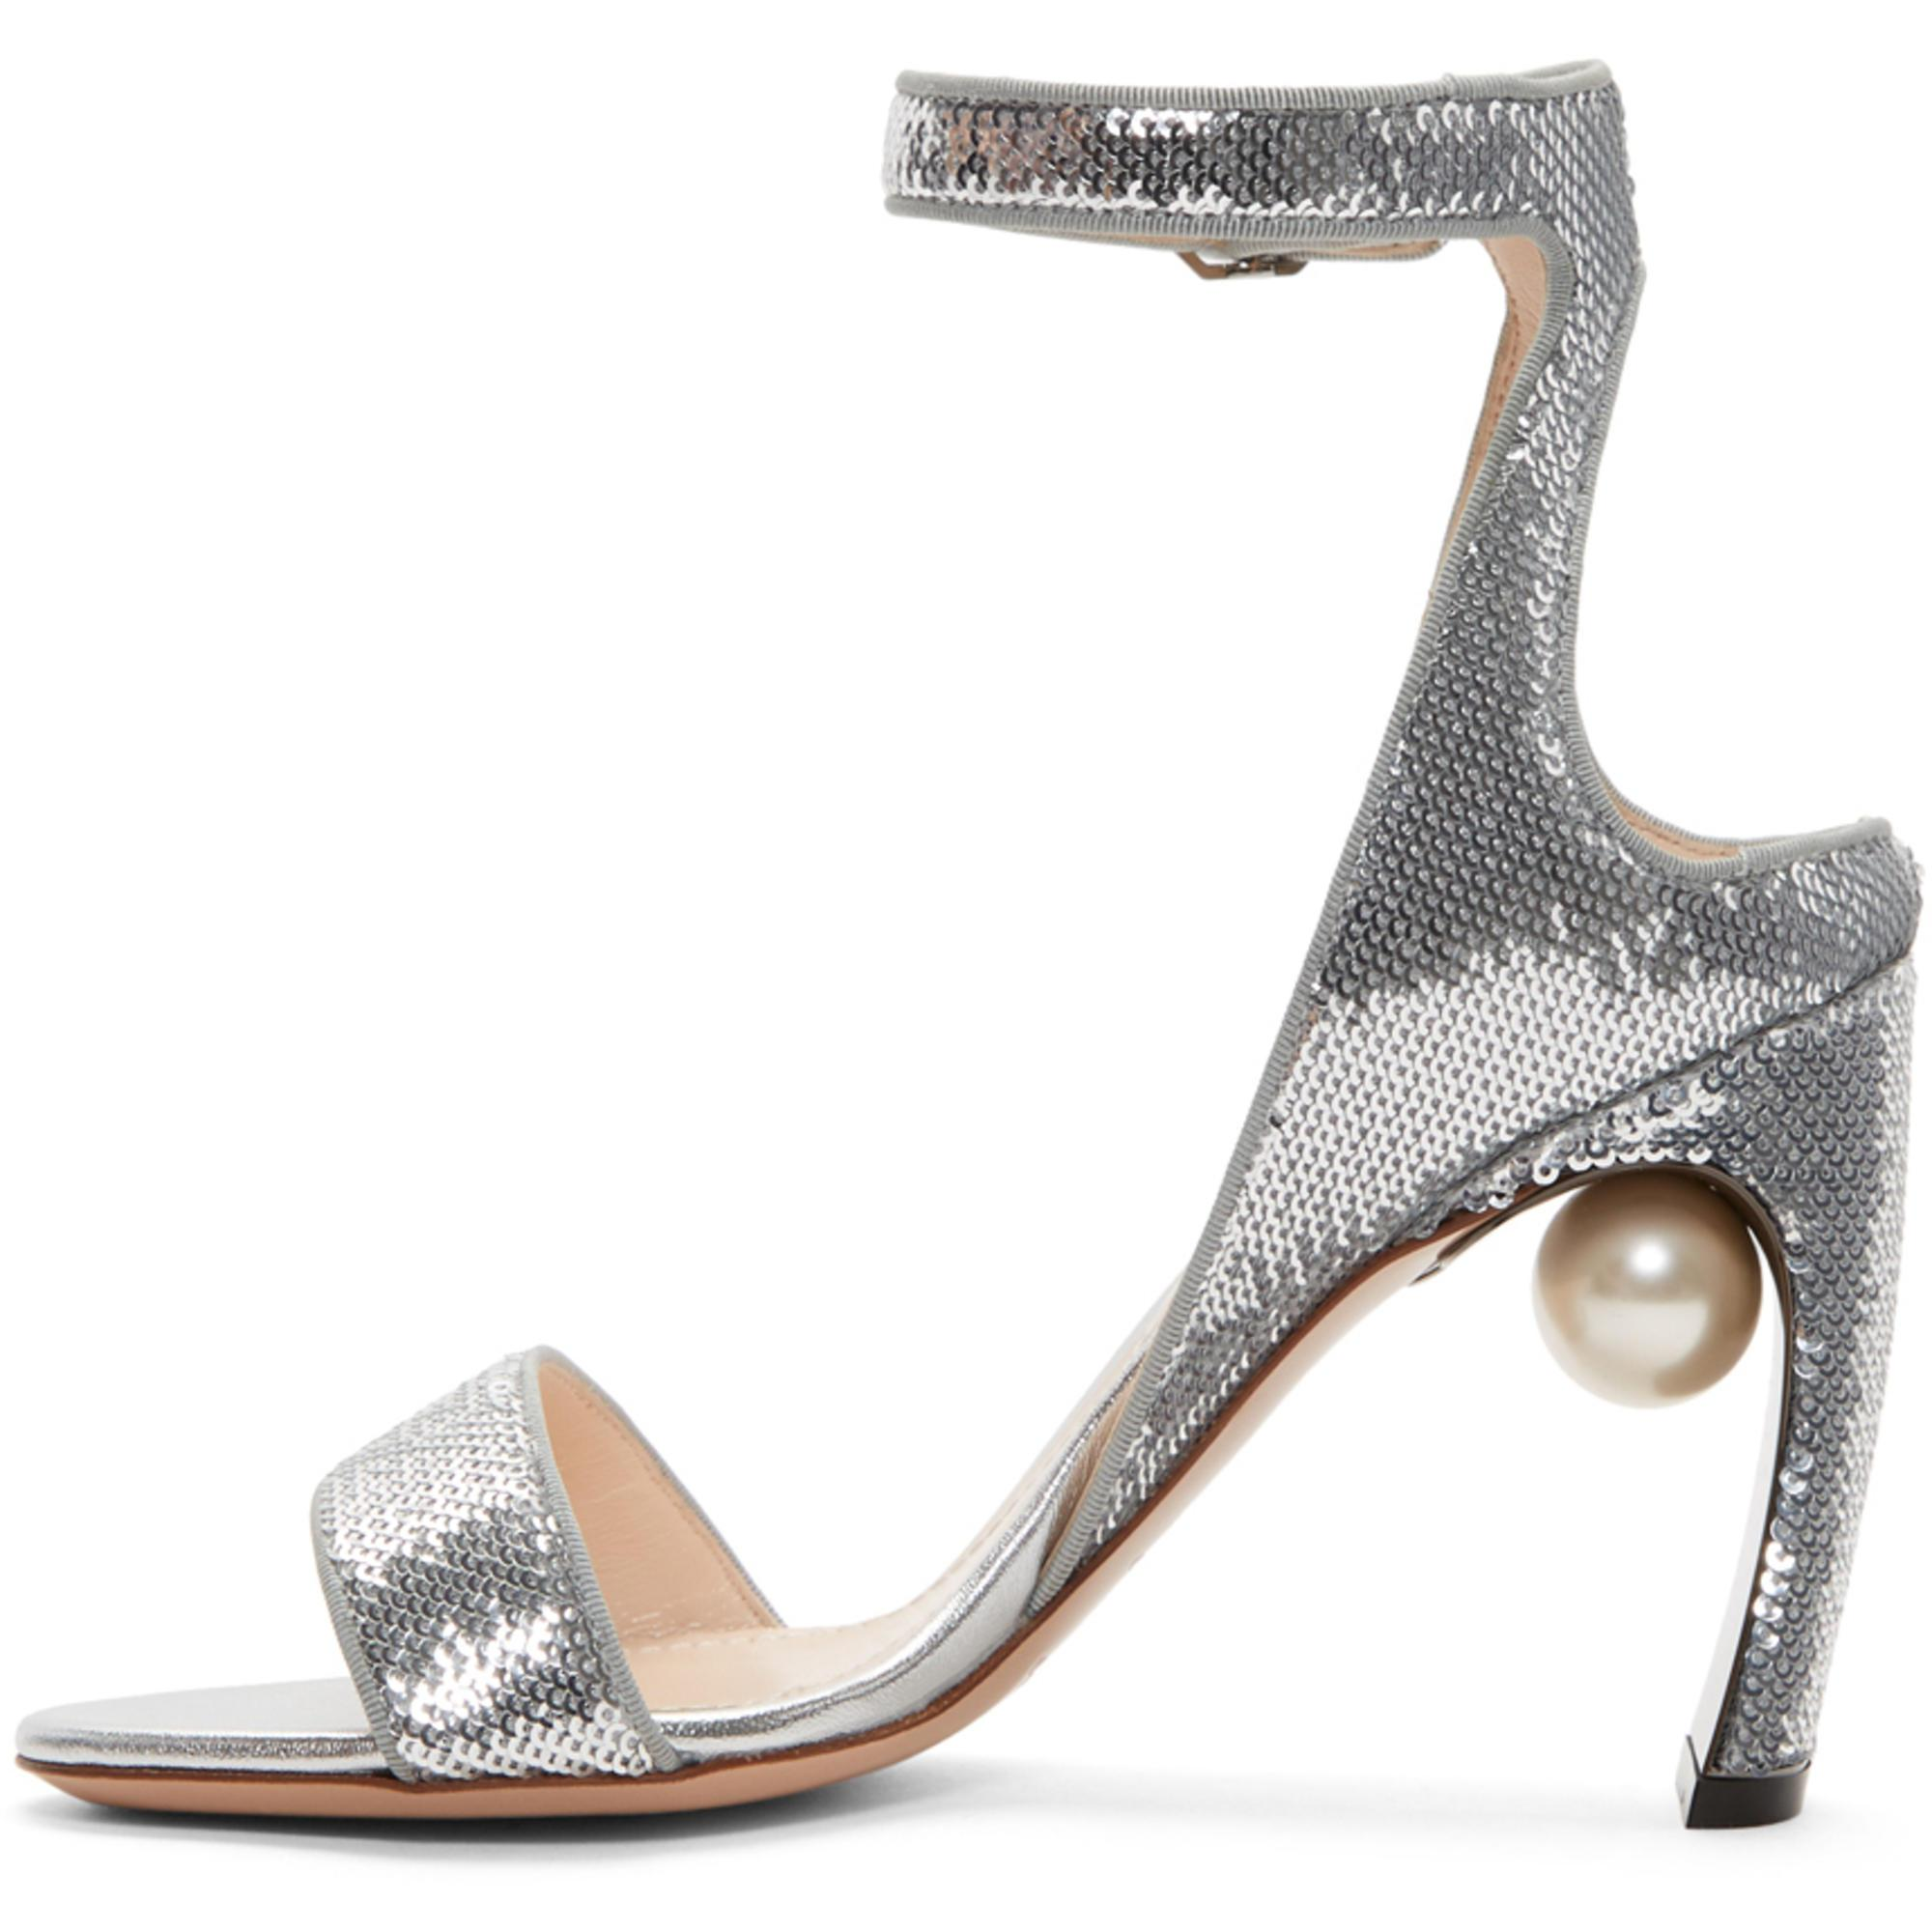 20a546500d9 Gallery. Previously sold at  SSENSE · Women s Floral Pumps Women s Red Pumps  Women s Botkier Anna Women s Silver Sandals ...